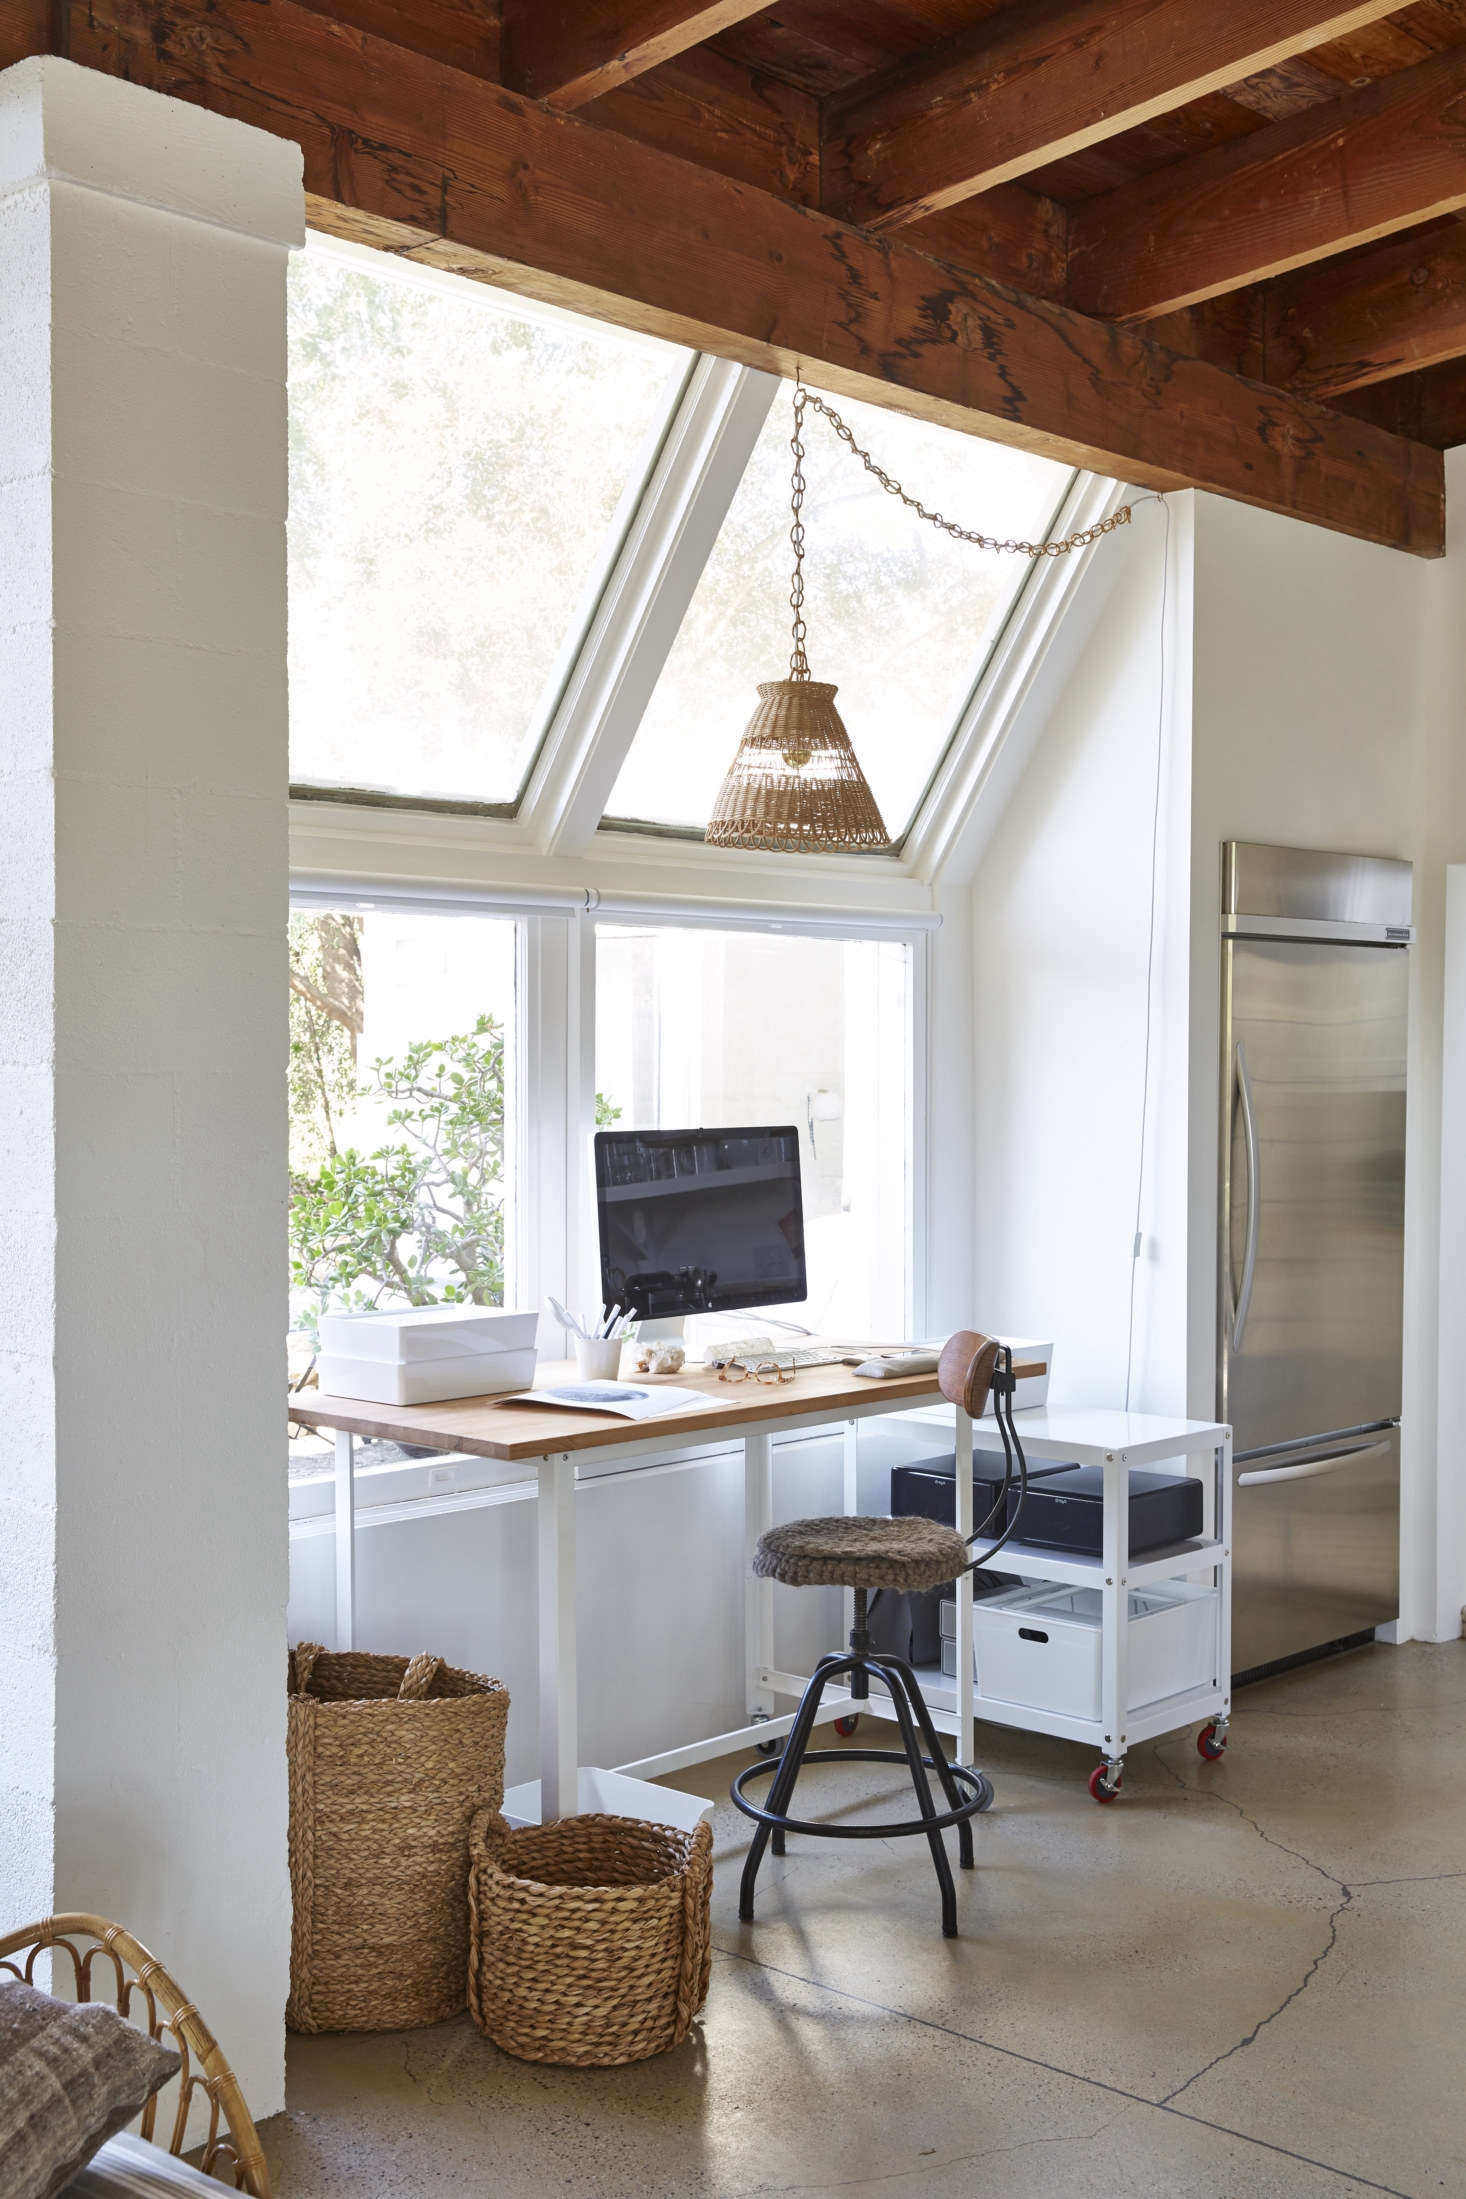 A slim workspace, with a clean-lined desk and stool, fits next to the KitchenAid fridge, along with a low credenza on wheels for easy transportation while shooting.